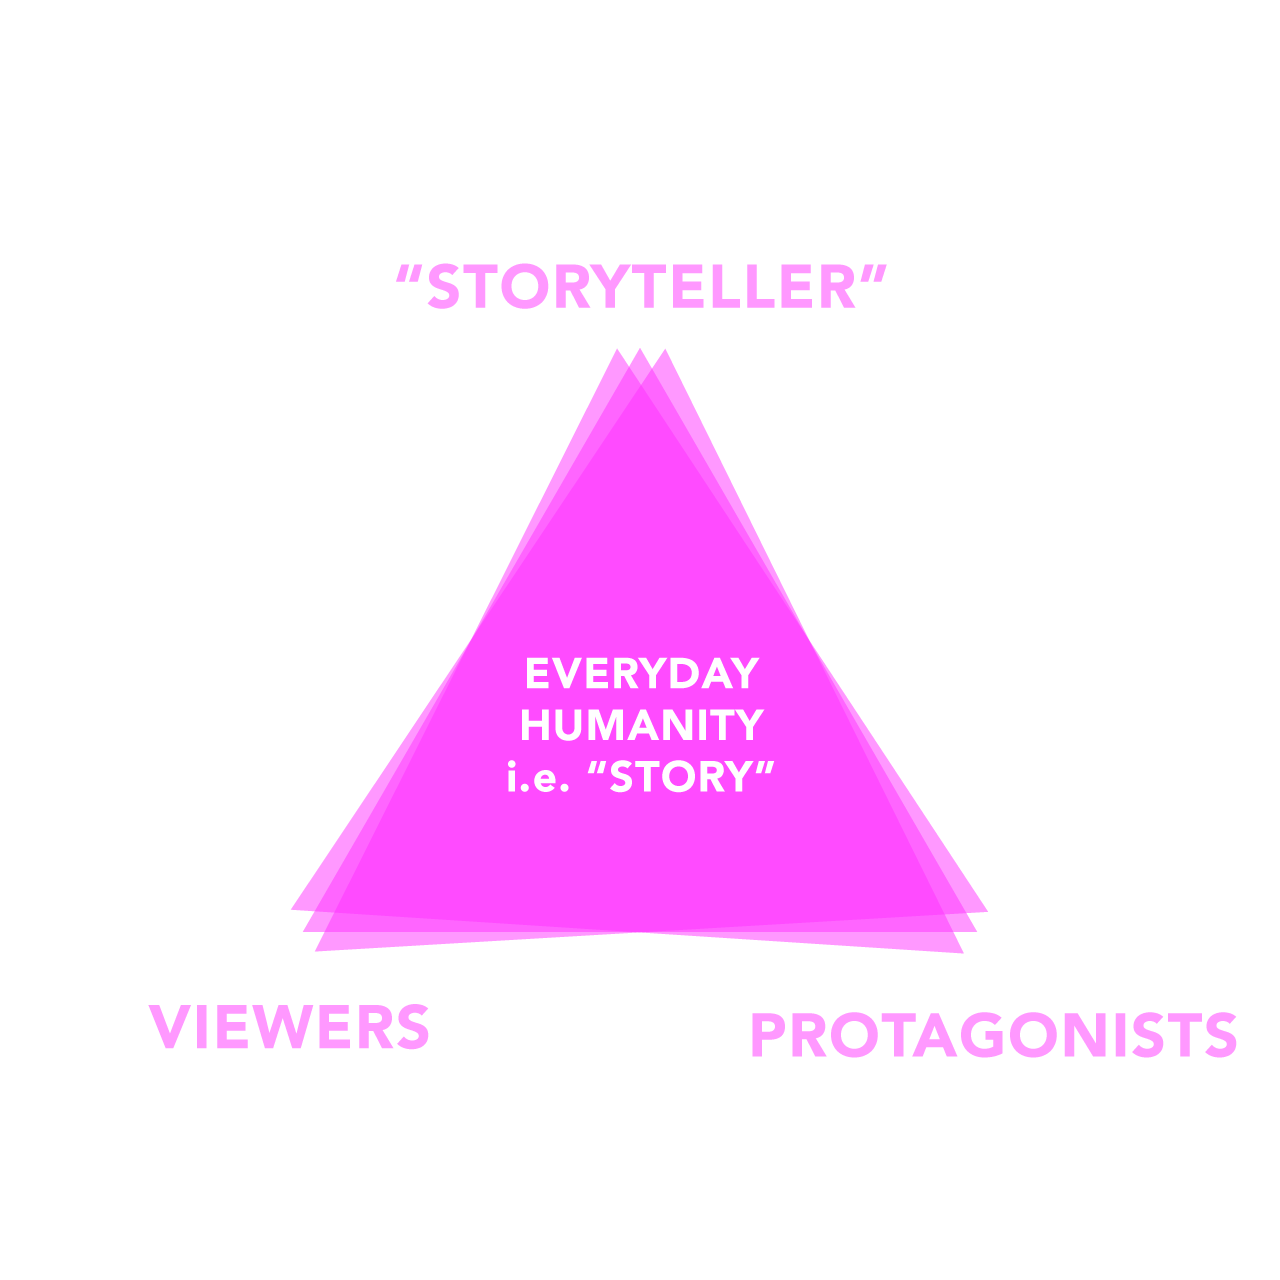 Storytelling-Triangle.png